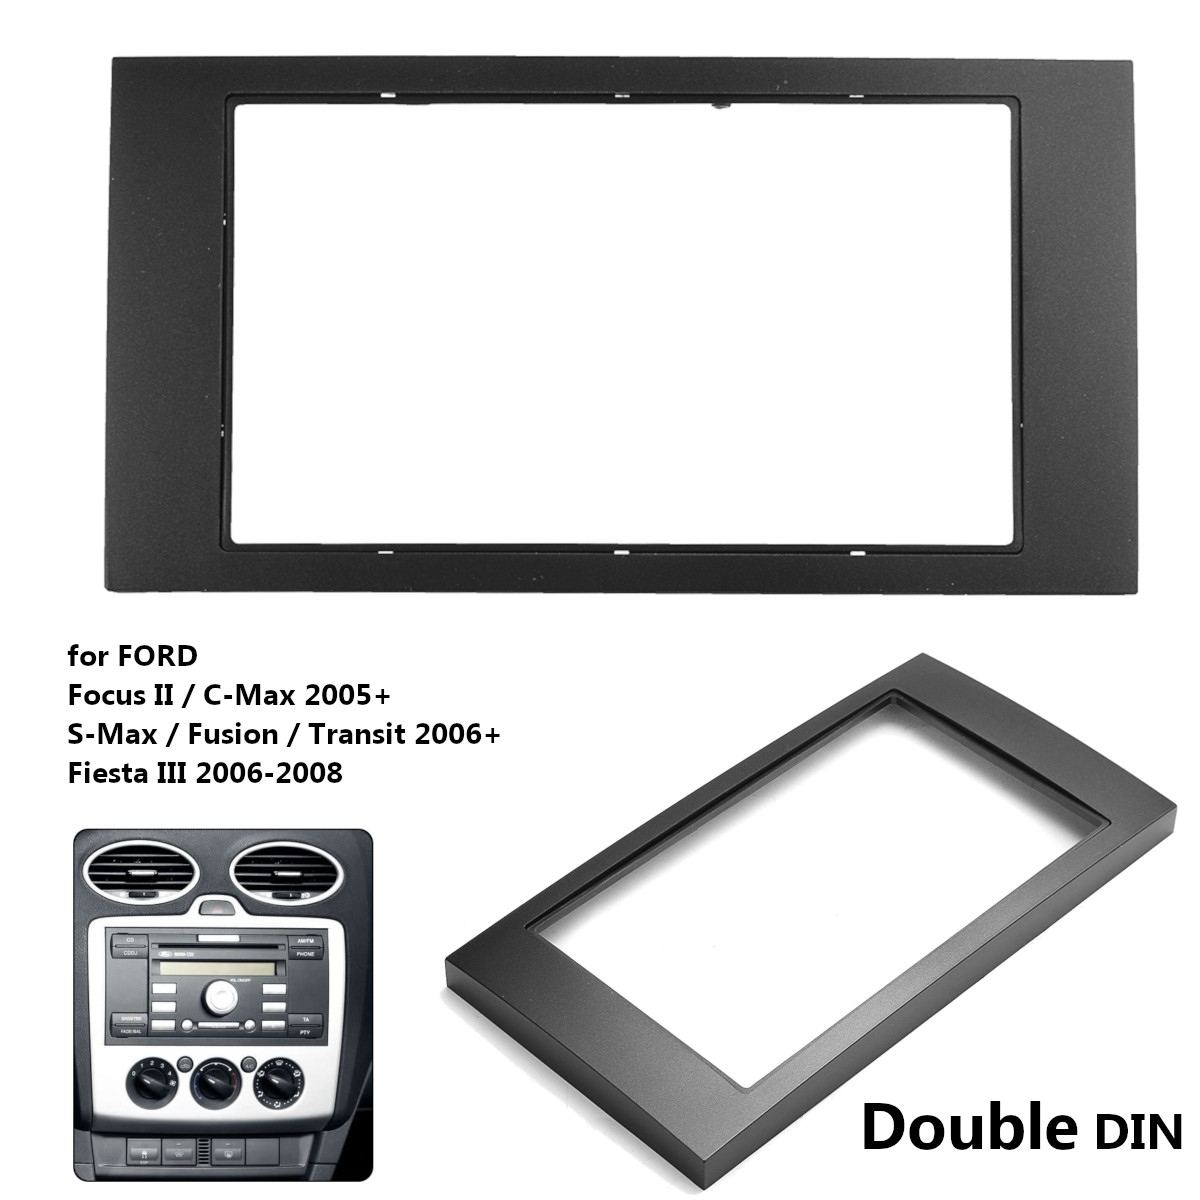 2 Din Car Stereo Radio Fascia Panel Dash Mount Install Trim Kit for Ford/Focus II/C-Max/S-Max Fusion Transit for Fiesta III 2005 image